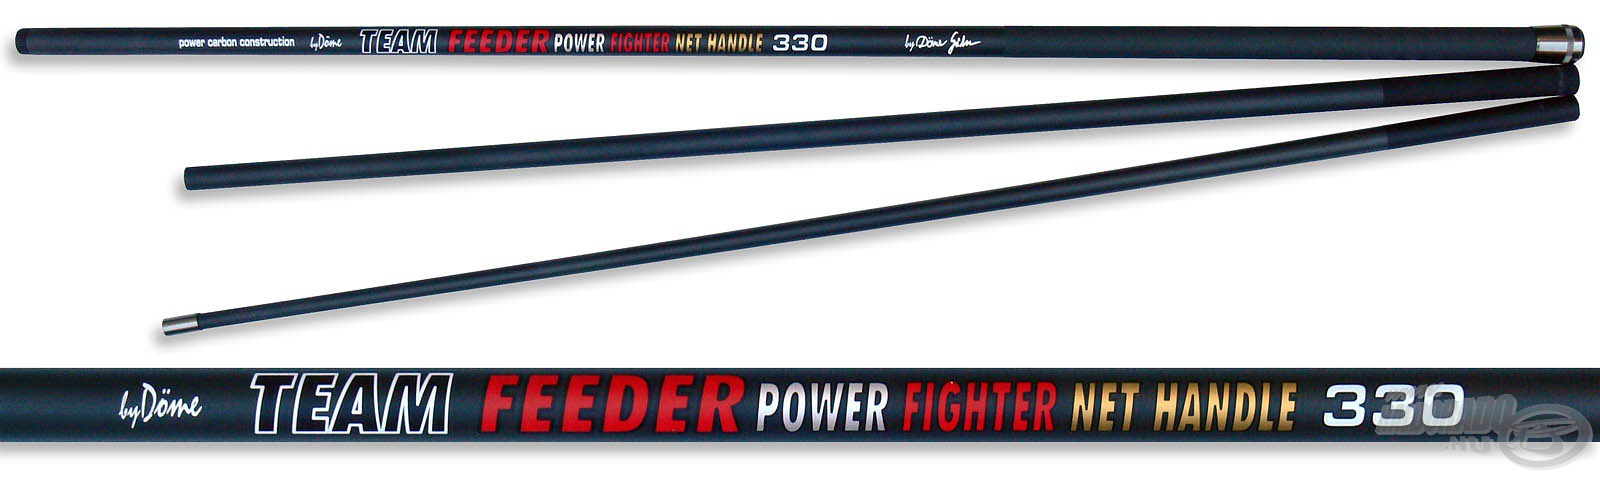 By, D�me, Team, Feeder, Power, Fighter, rak�s, mer�t�ny�l, 3,3, m, 7990Ft